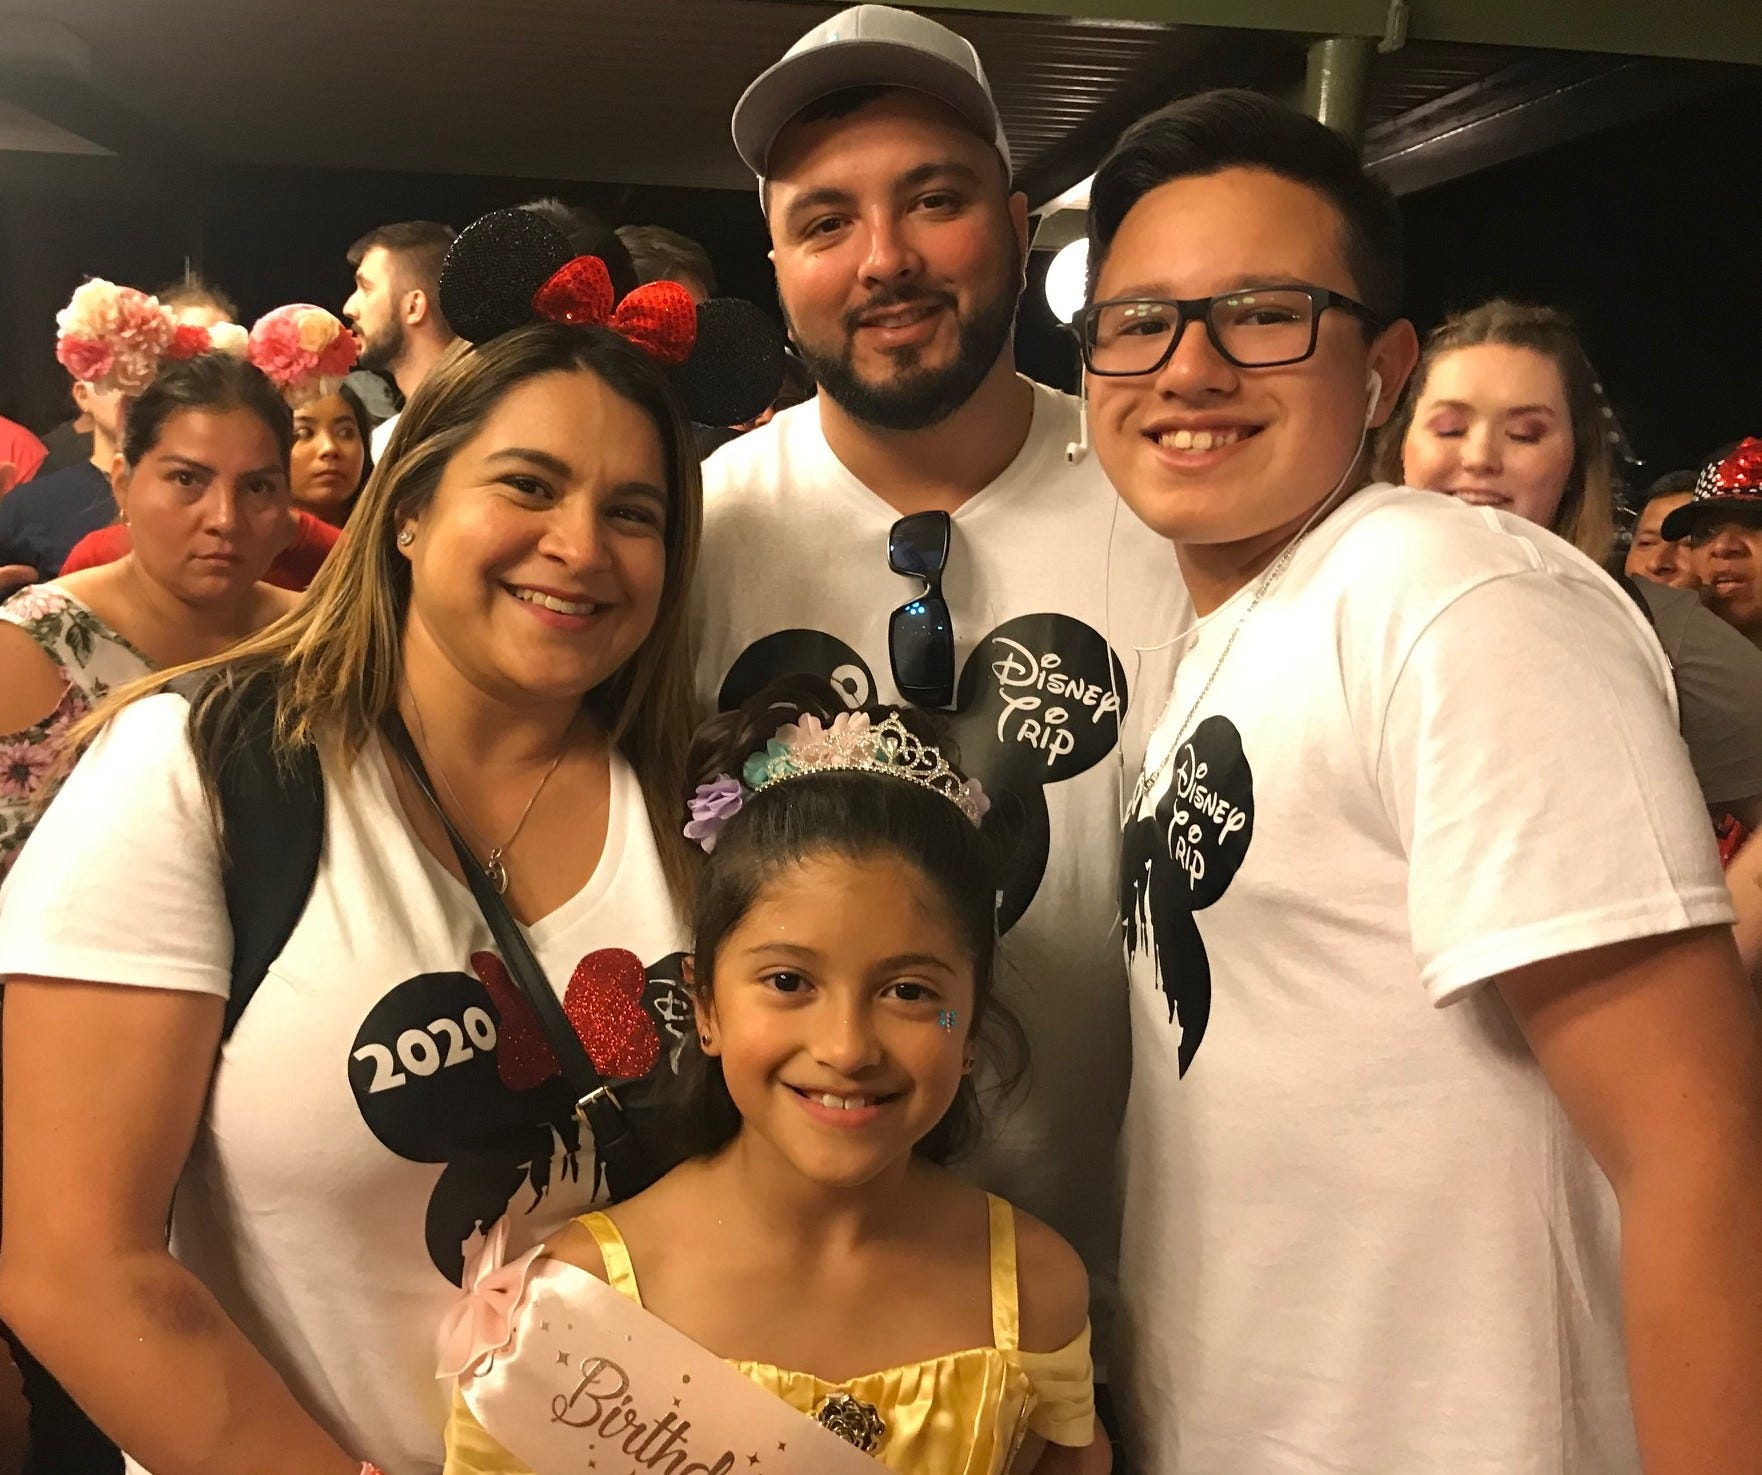 AraceliandCarlos Rios of Texas visit Magic Kingdom March 13 with their children, Carlos Jr. and Isabella, who was celebrating turning 8. The family, Araceli said, took time to make sure the children avoided touching their faces and washed their hands often during their trip, planned before the spread of the coronavirus that's reached global pandemic stage.